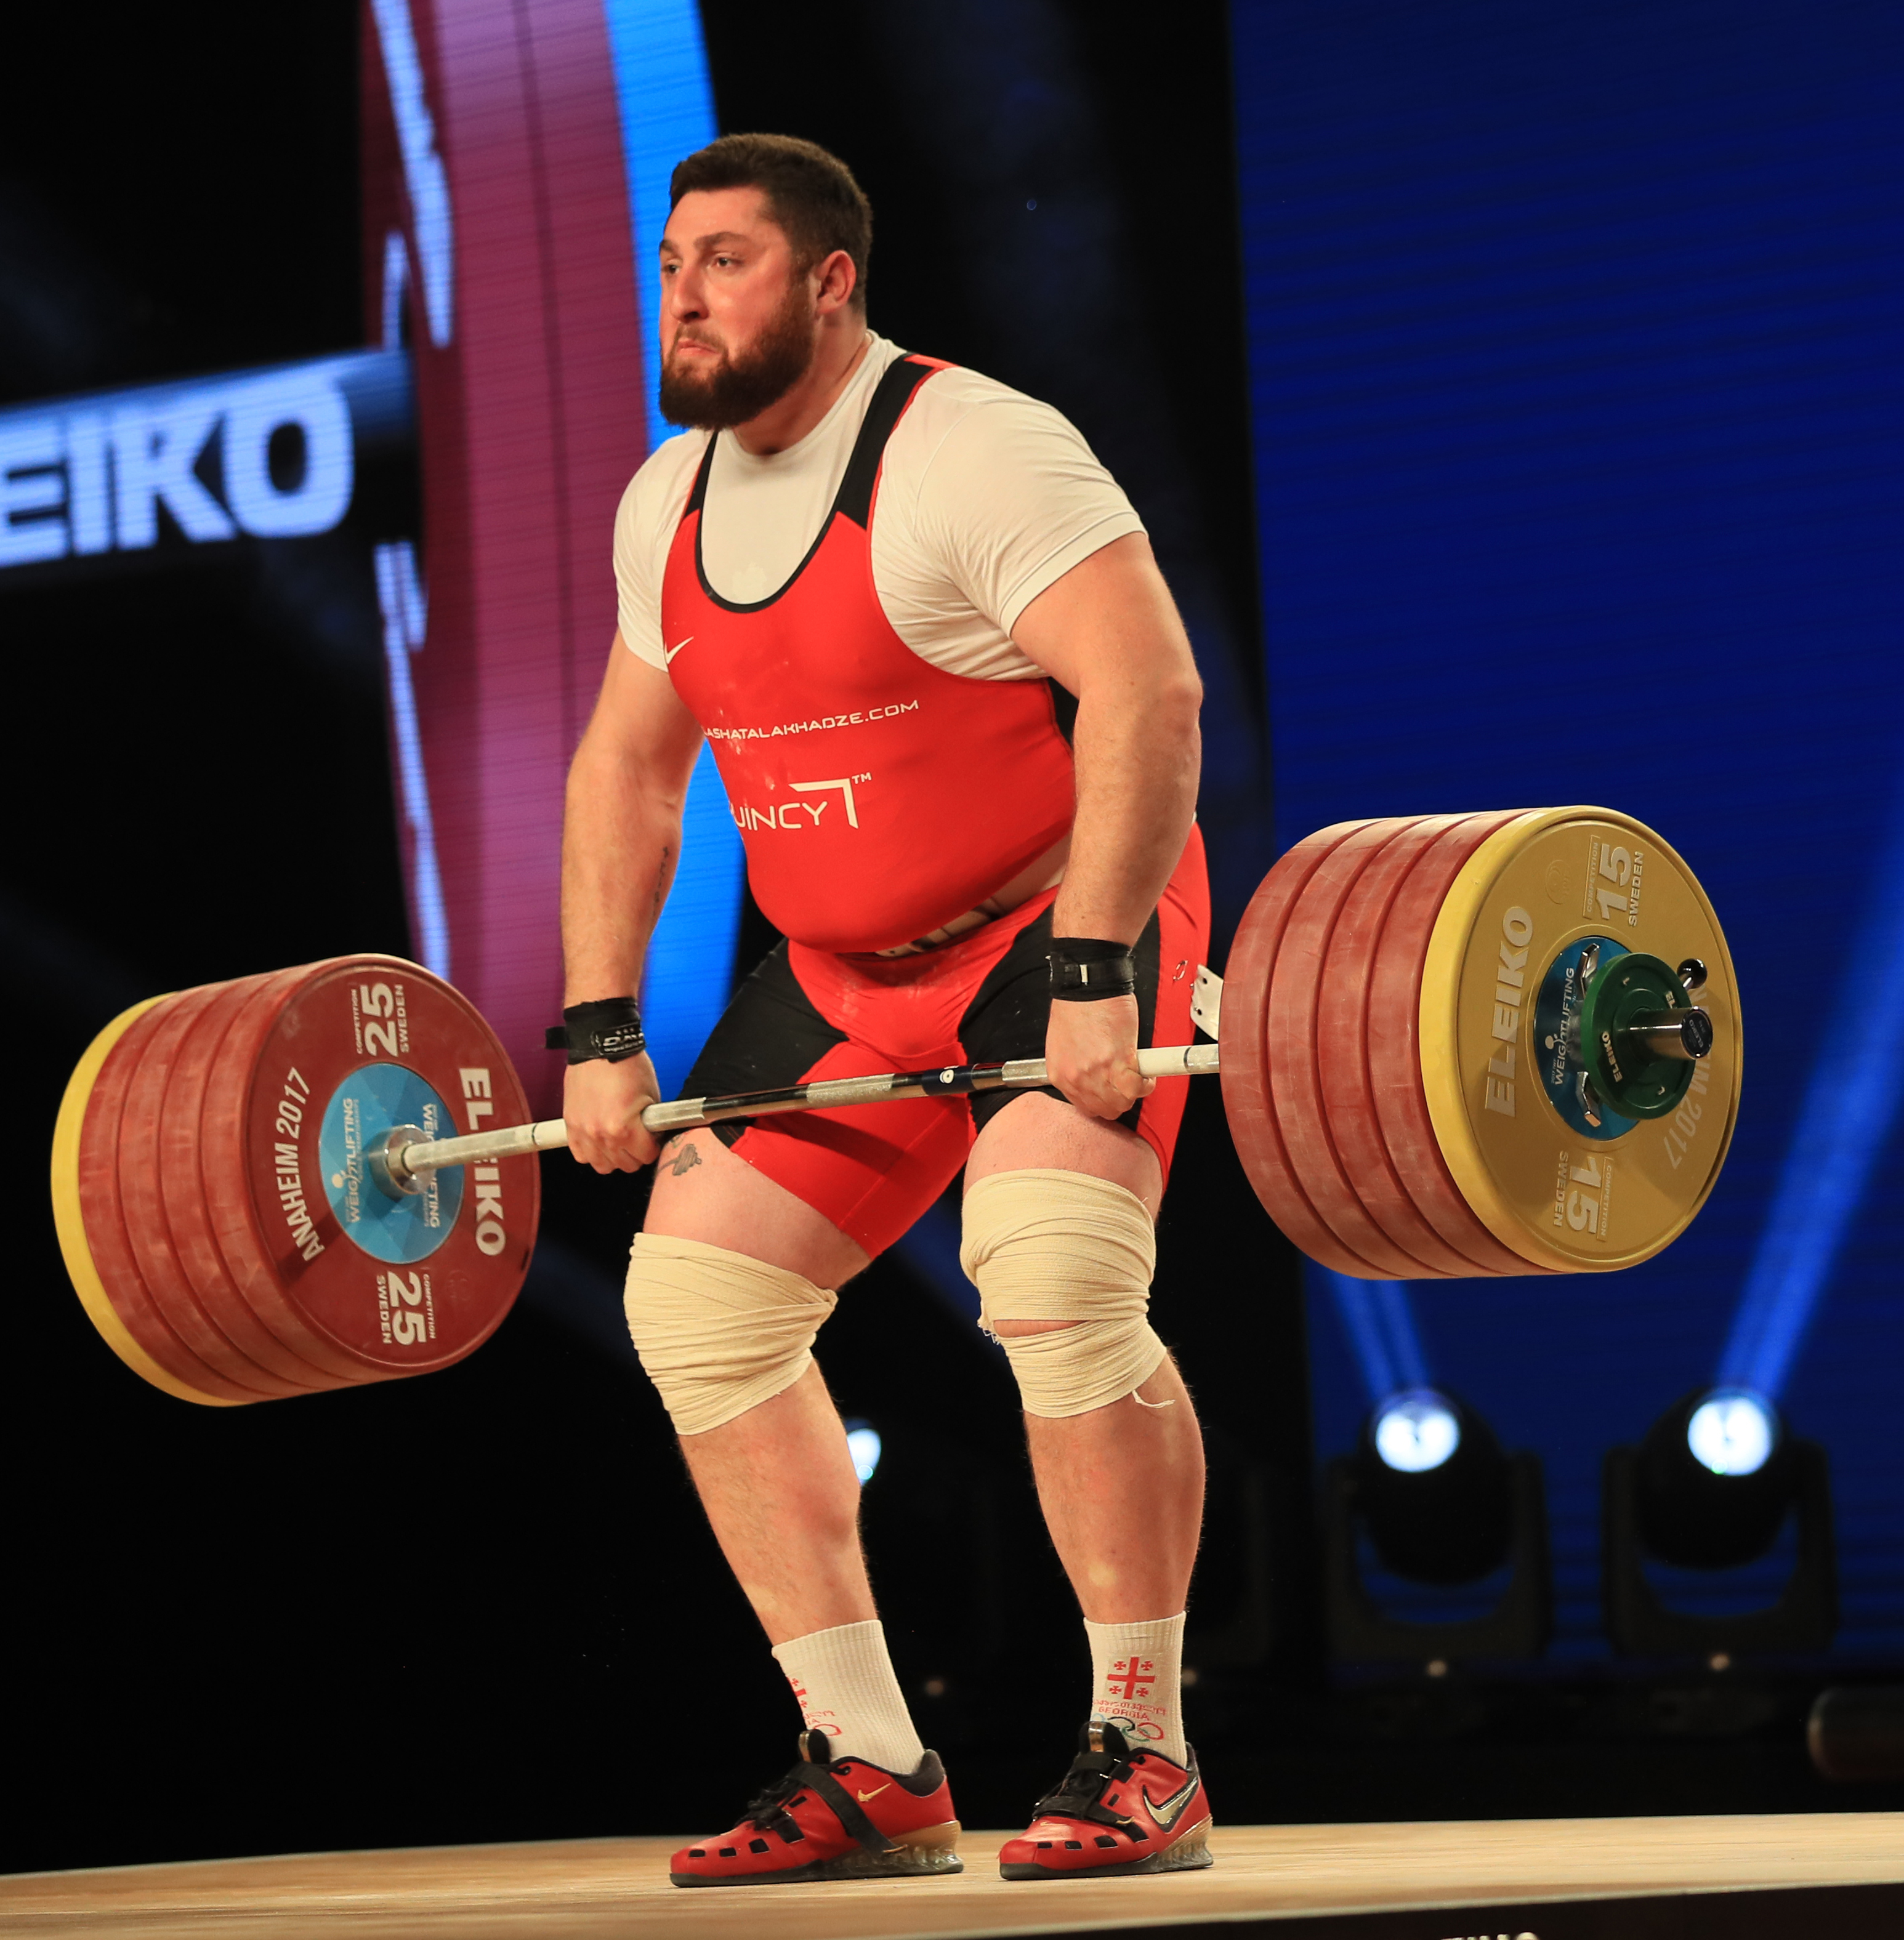 The 2017 World Weightlifting Championships | Sportivny Press